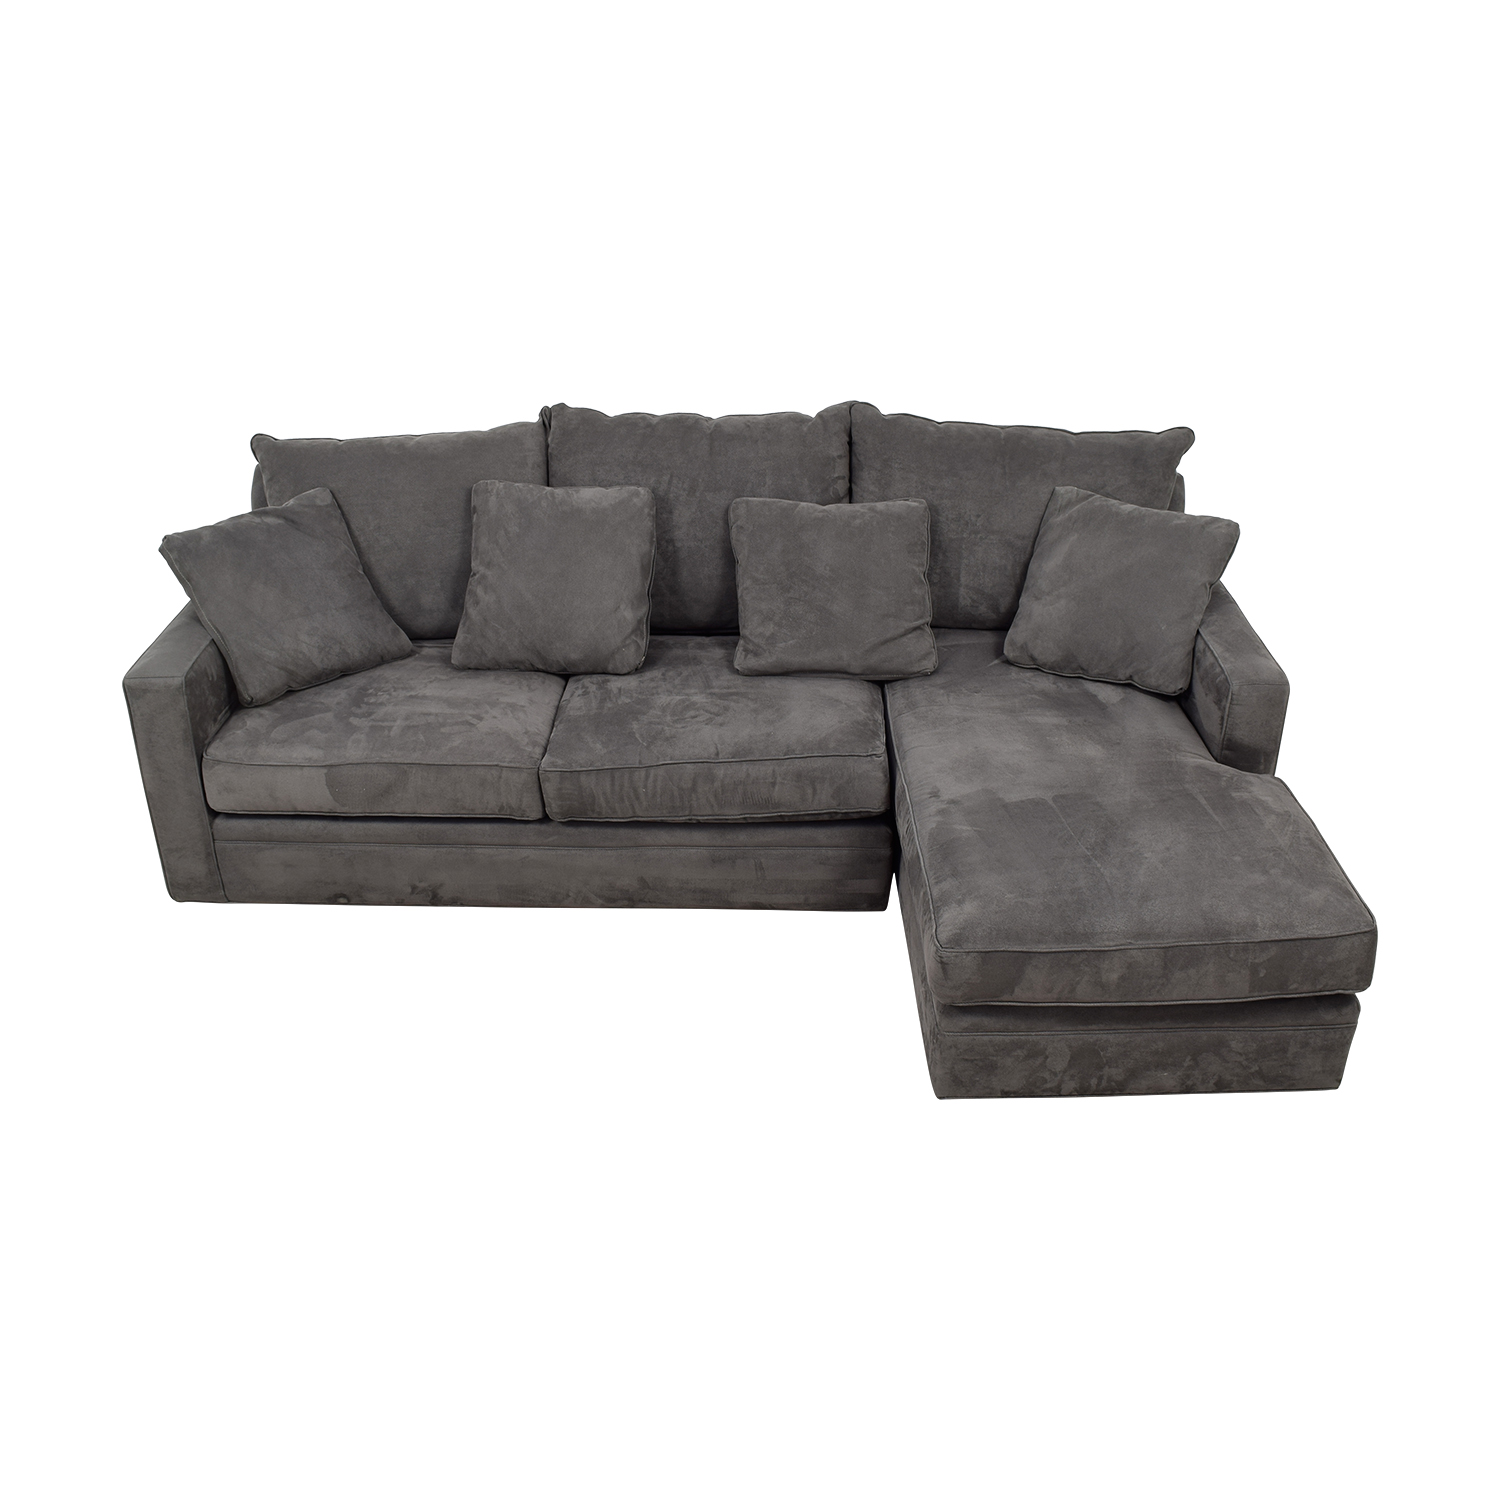 Room & Board Room & Board Grey Chaise Sectional Sectionals